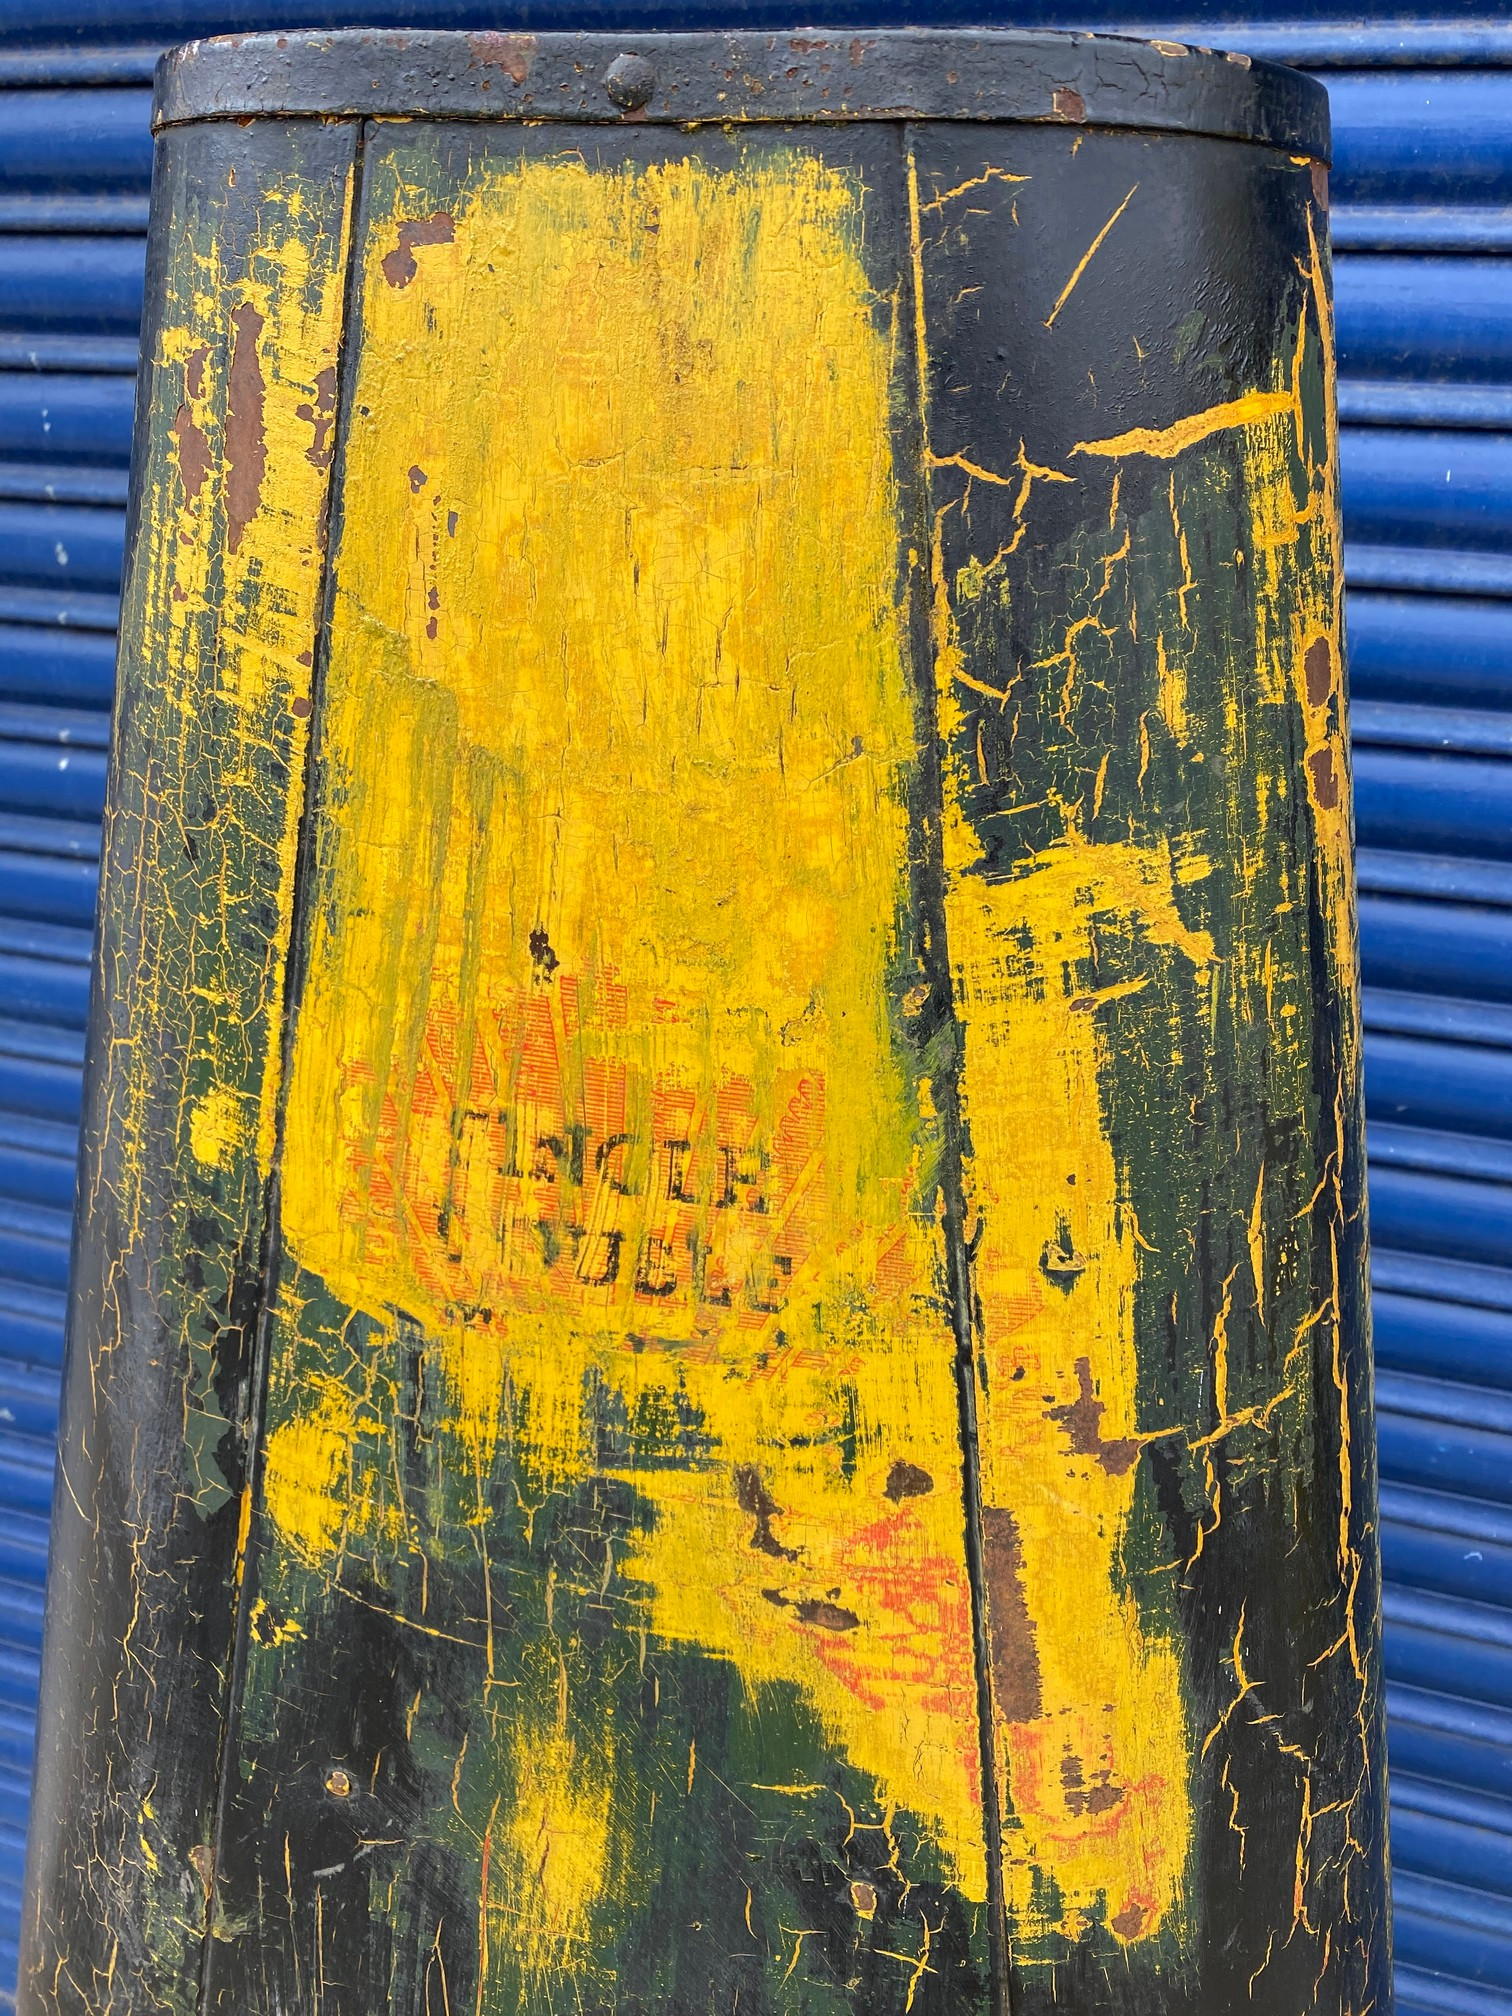 A very rare Shell lubrication 'robot/stick man' forecourt cabinet. - Image 6 of 7